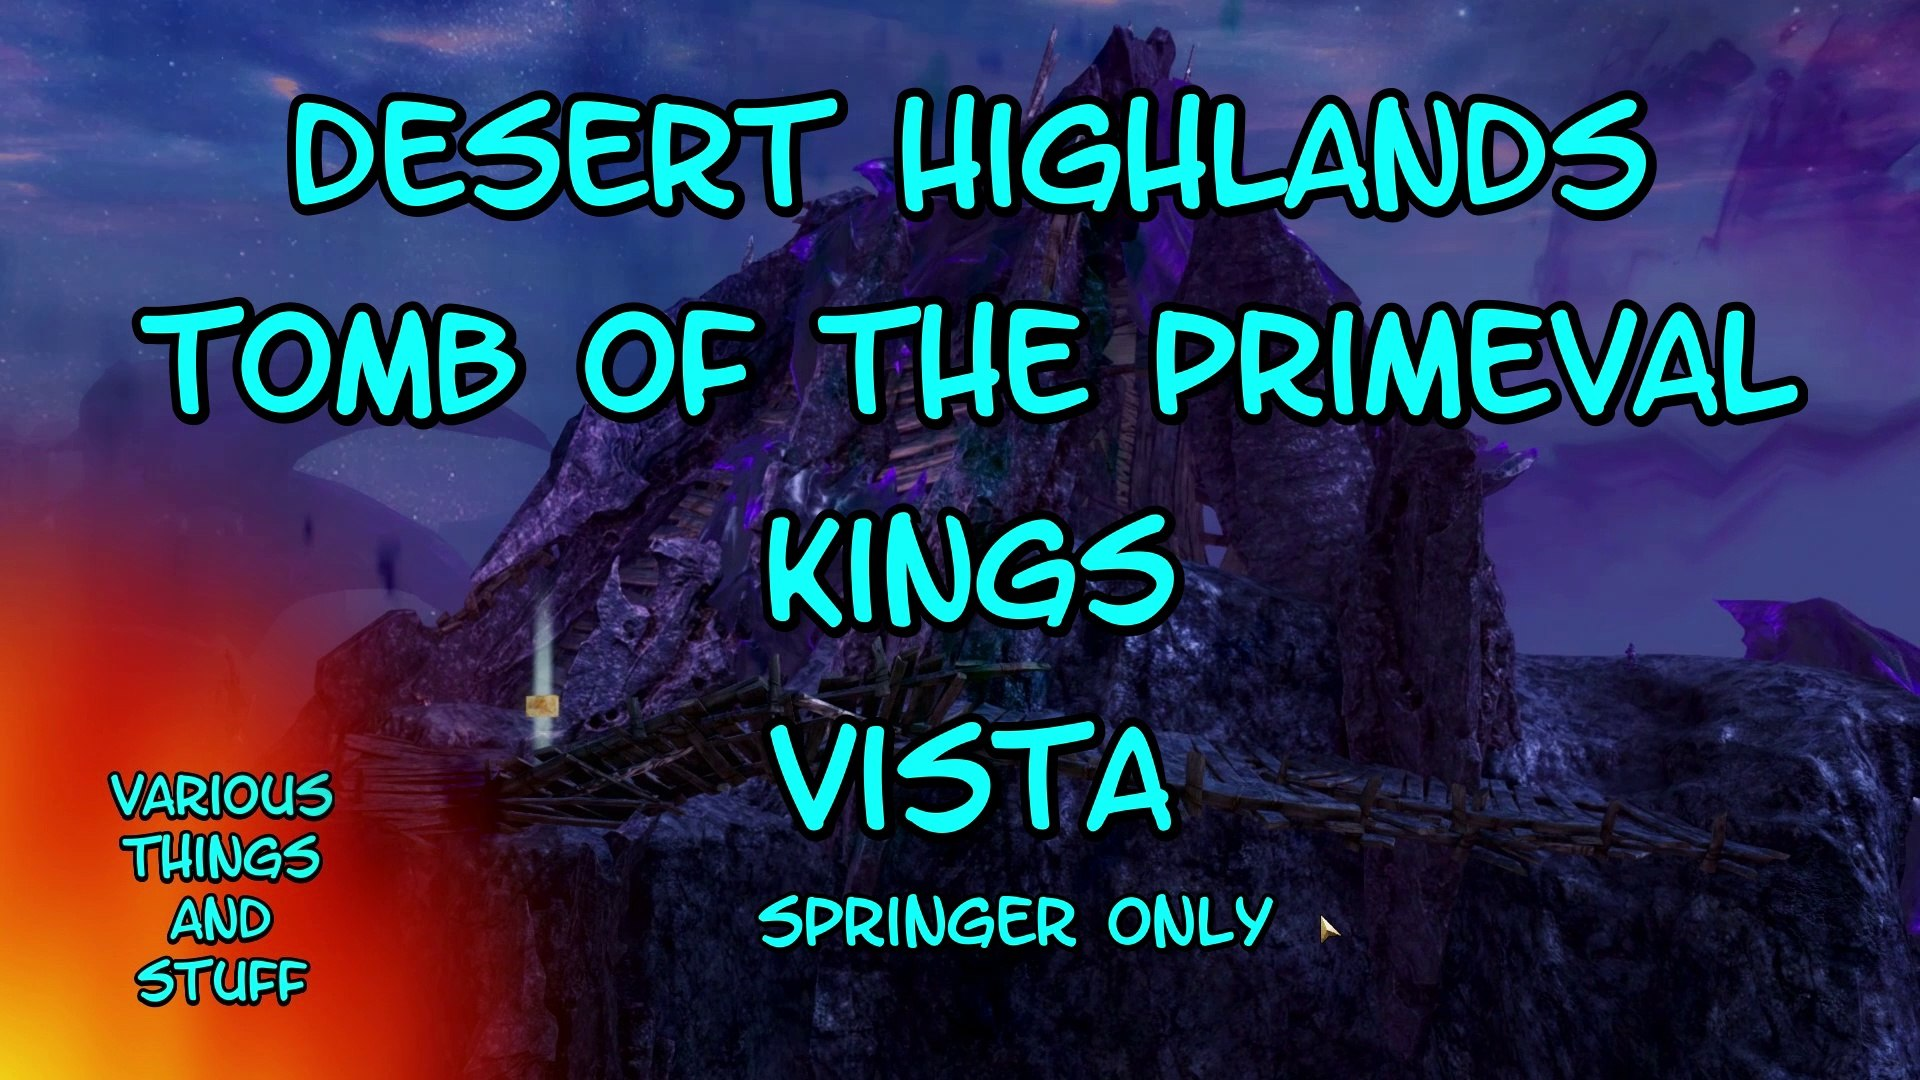 Guild Wars 2 Desert Highlands Tomb Of The Primeval Kings Vista Video Dailymotion